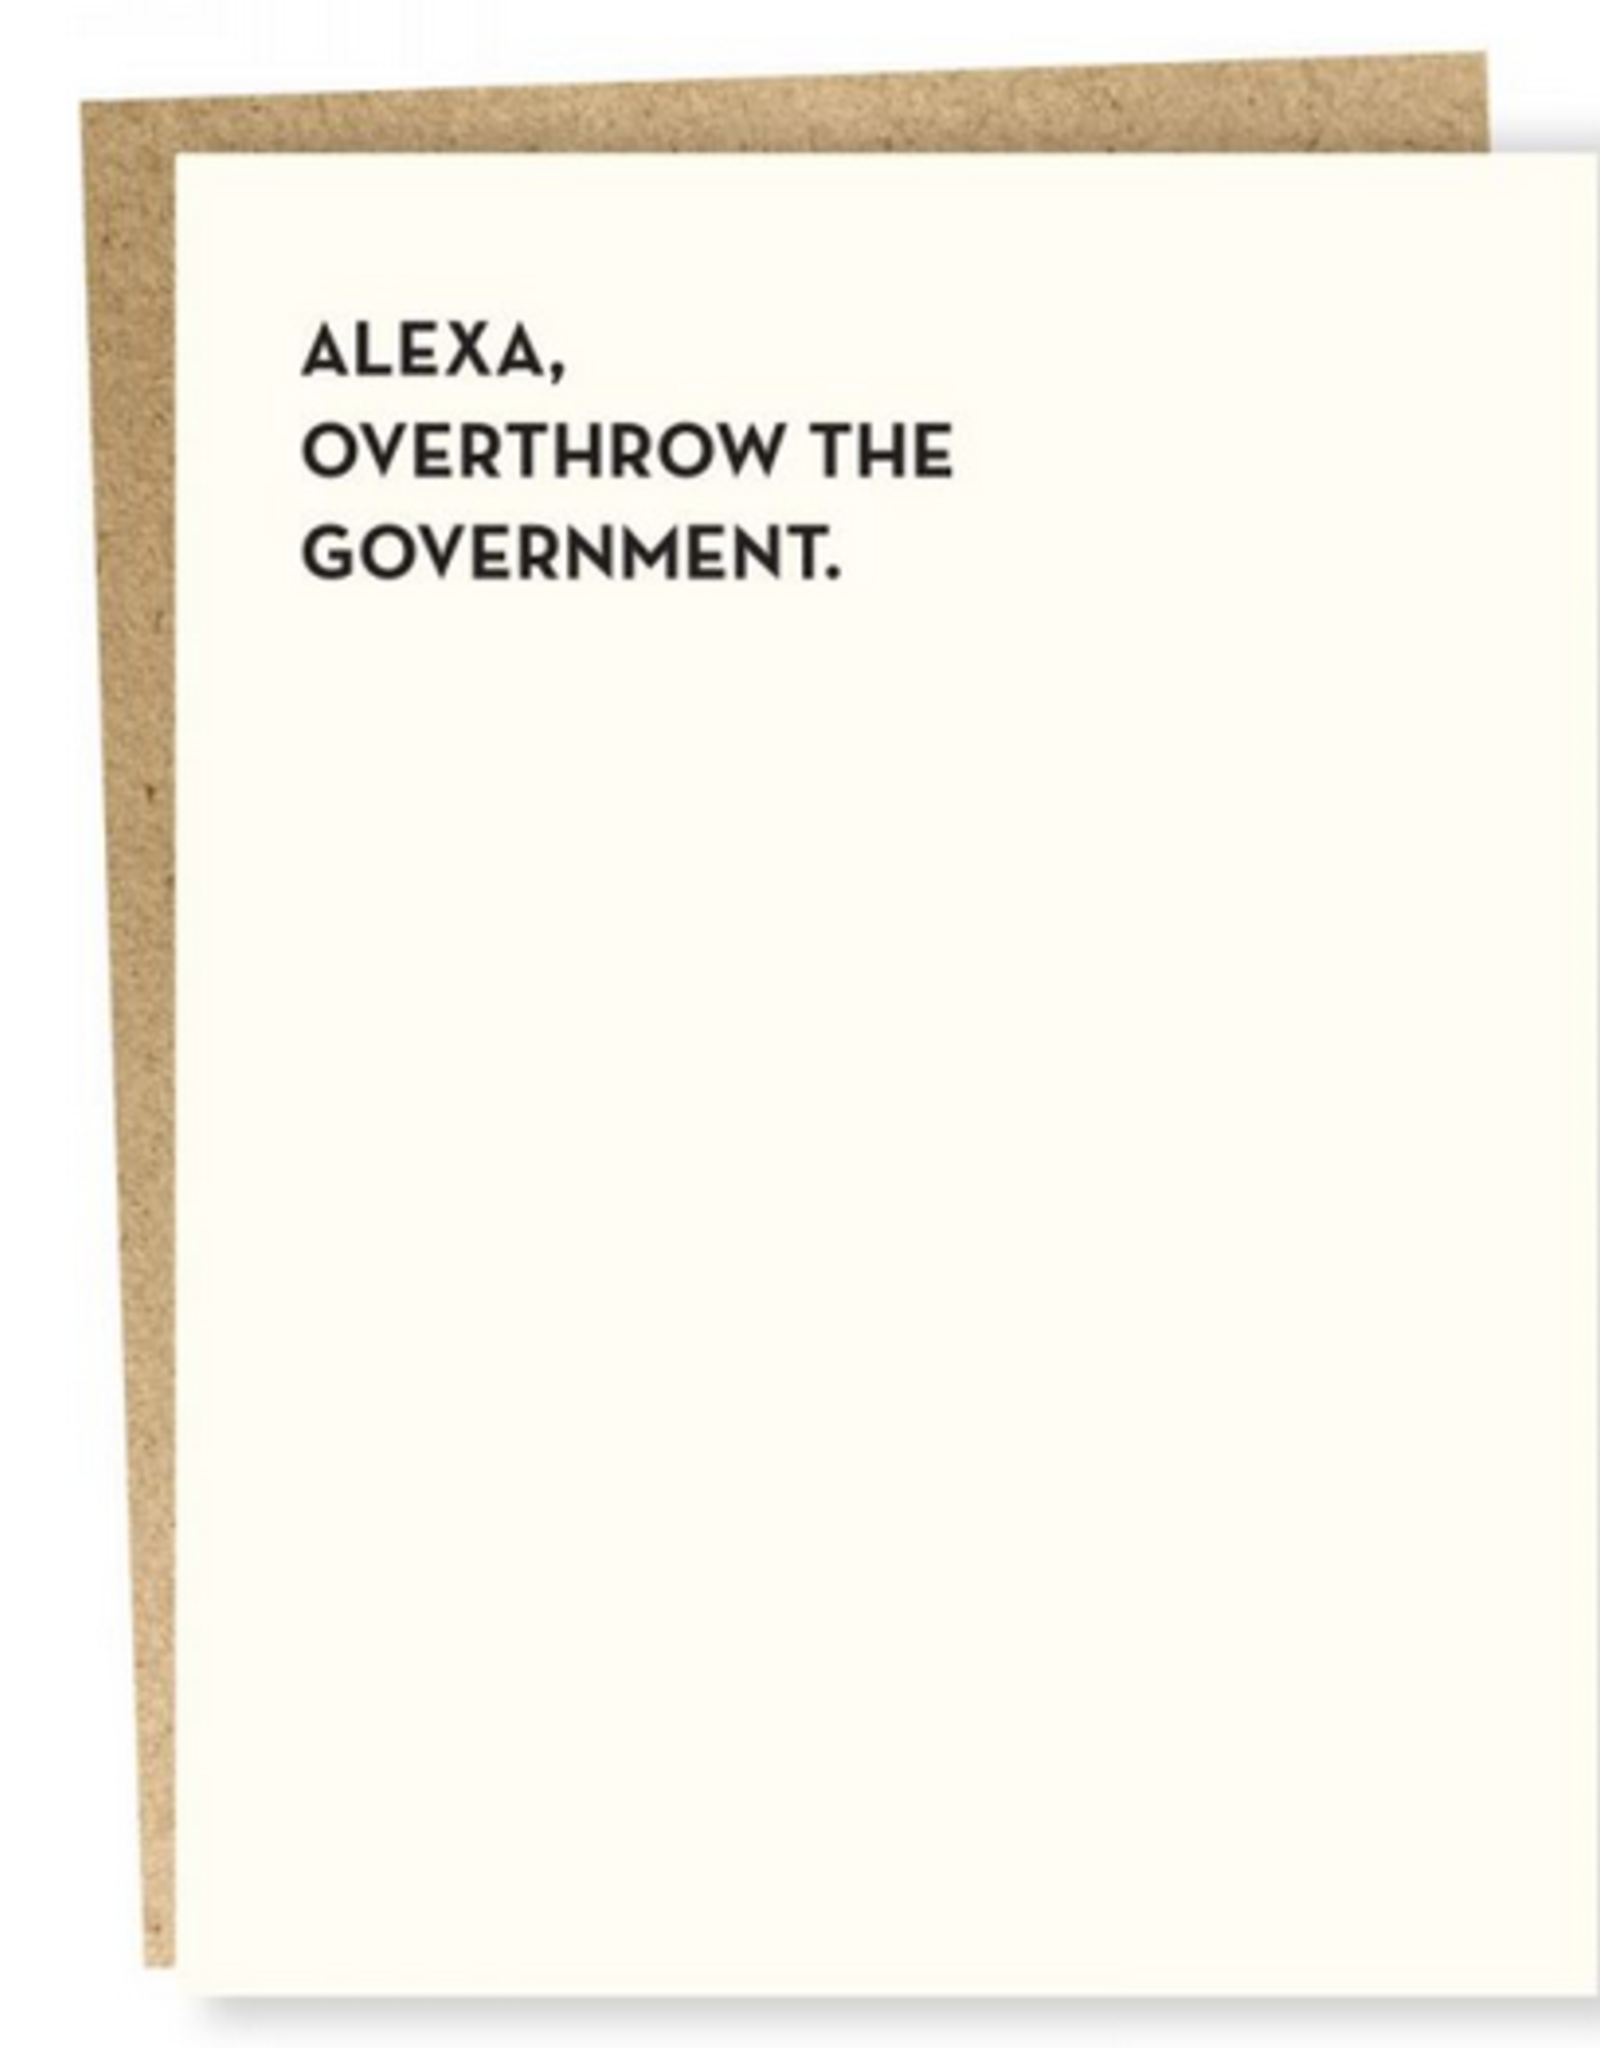 Alexa, Overthrow the Government Greeting Card